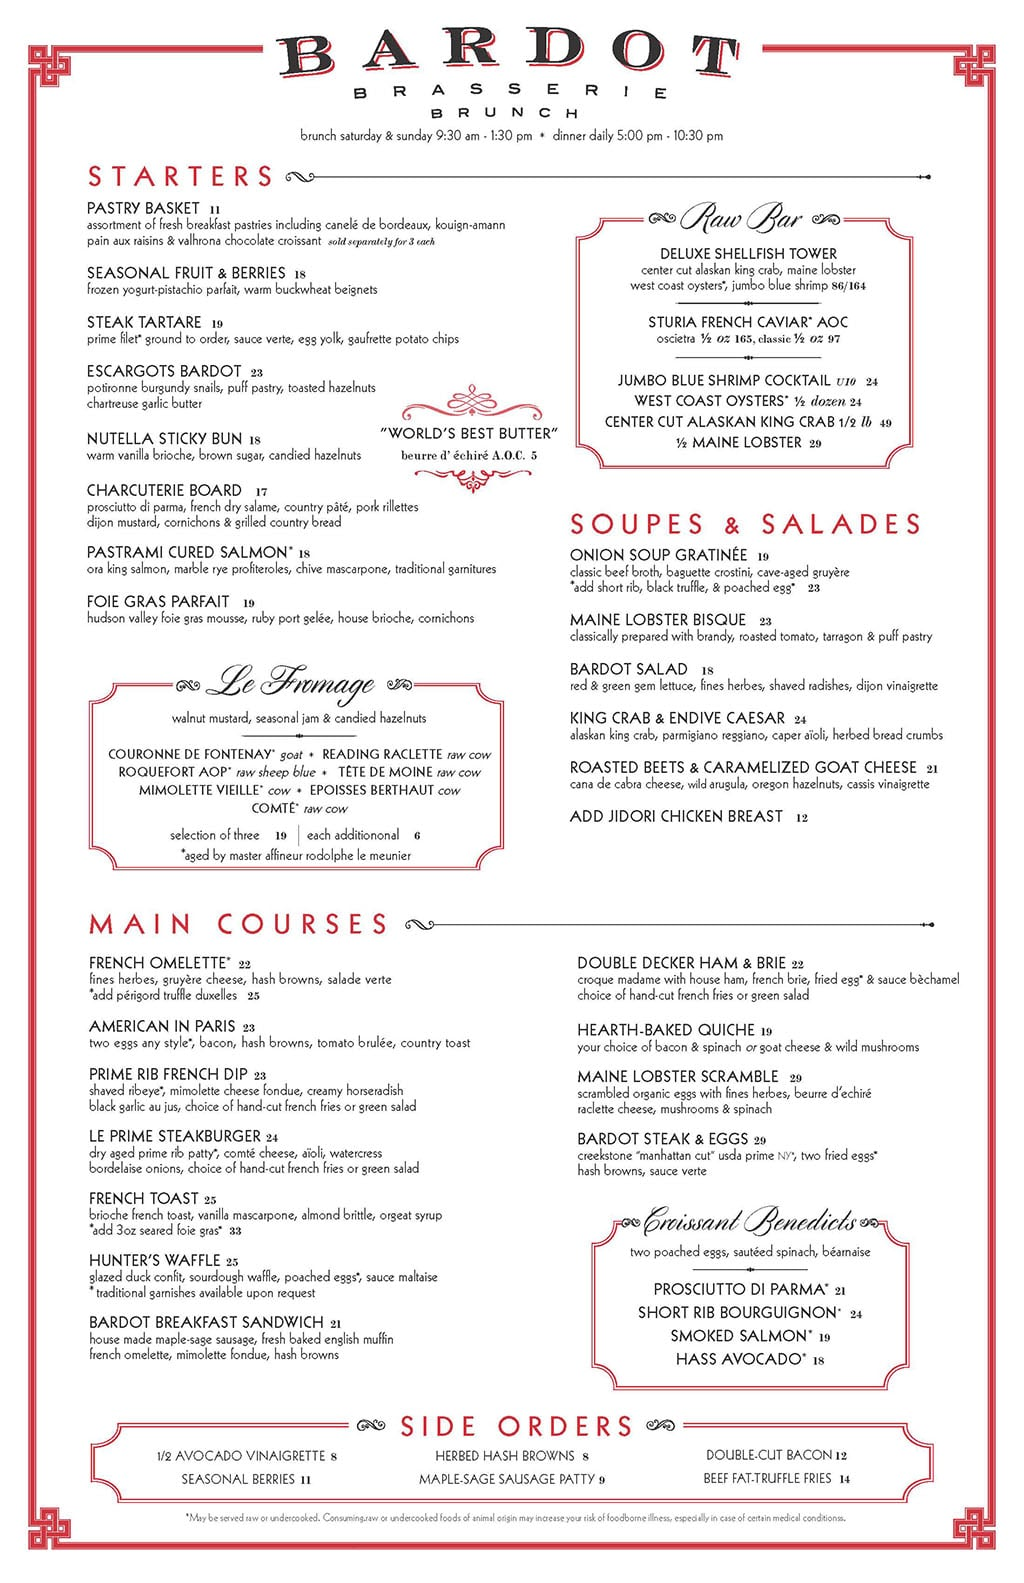 Bardot Brasserie brunch menu